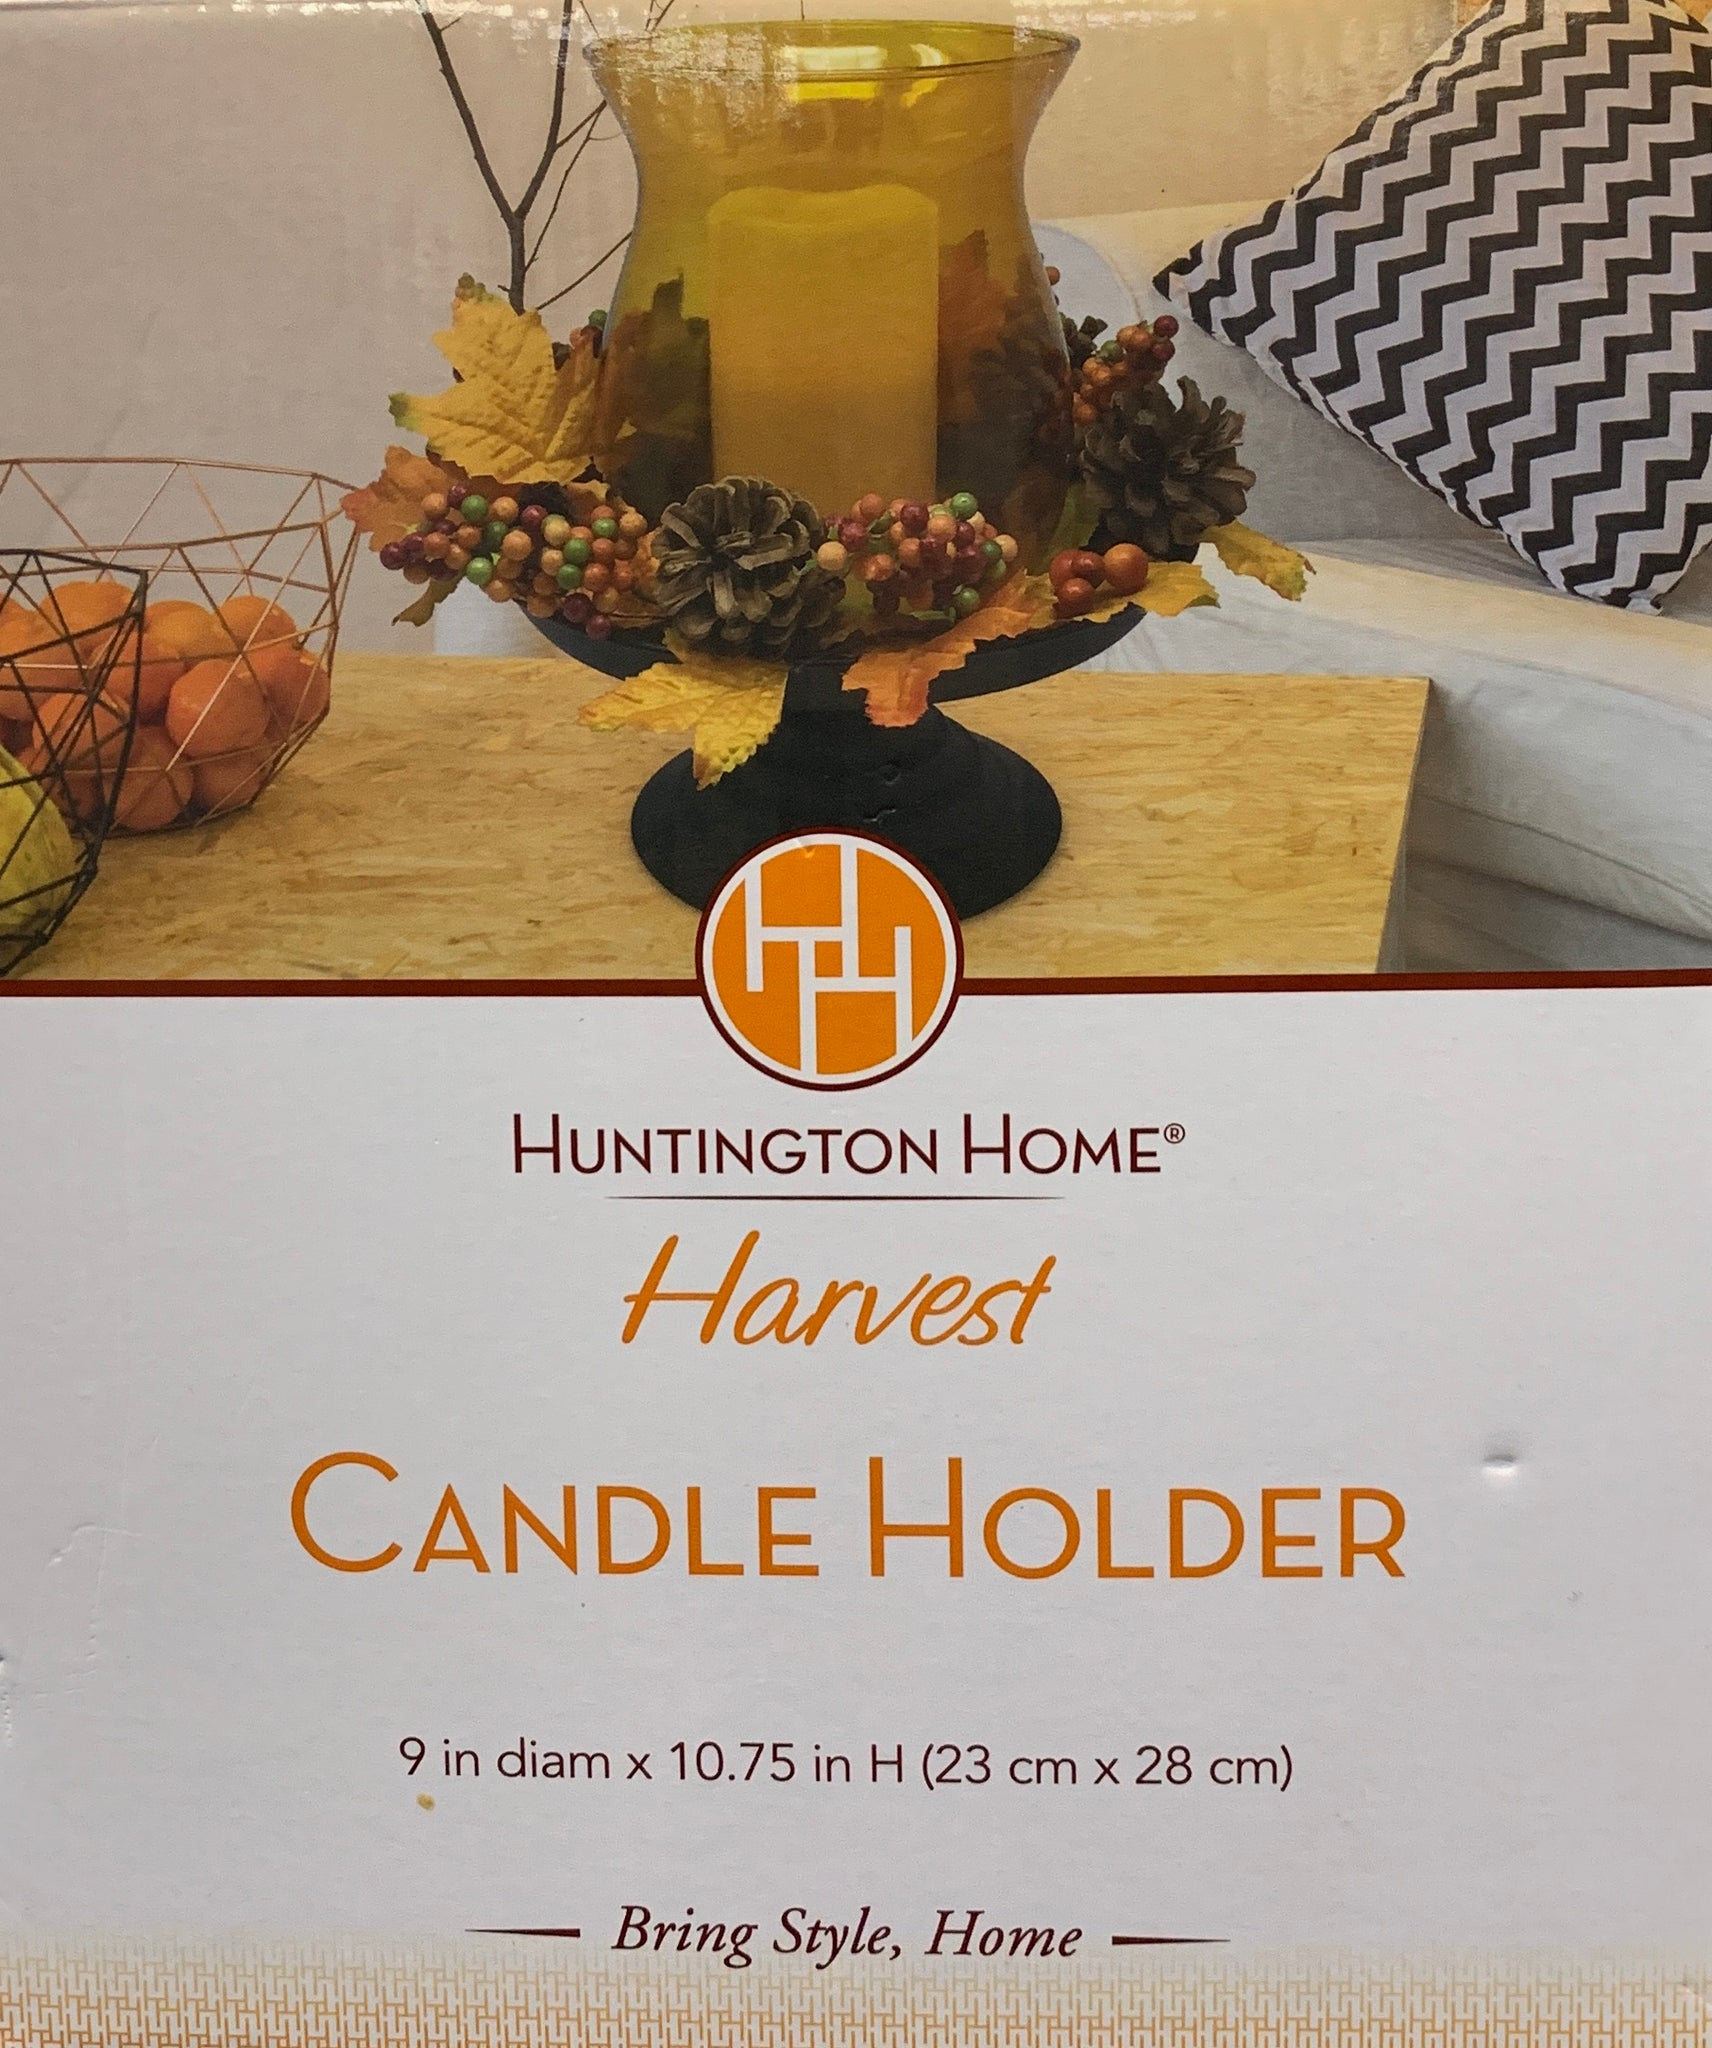 Huntington Home Harvest Candle Holder